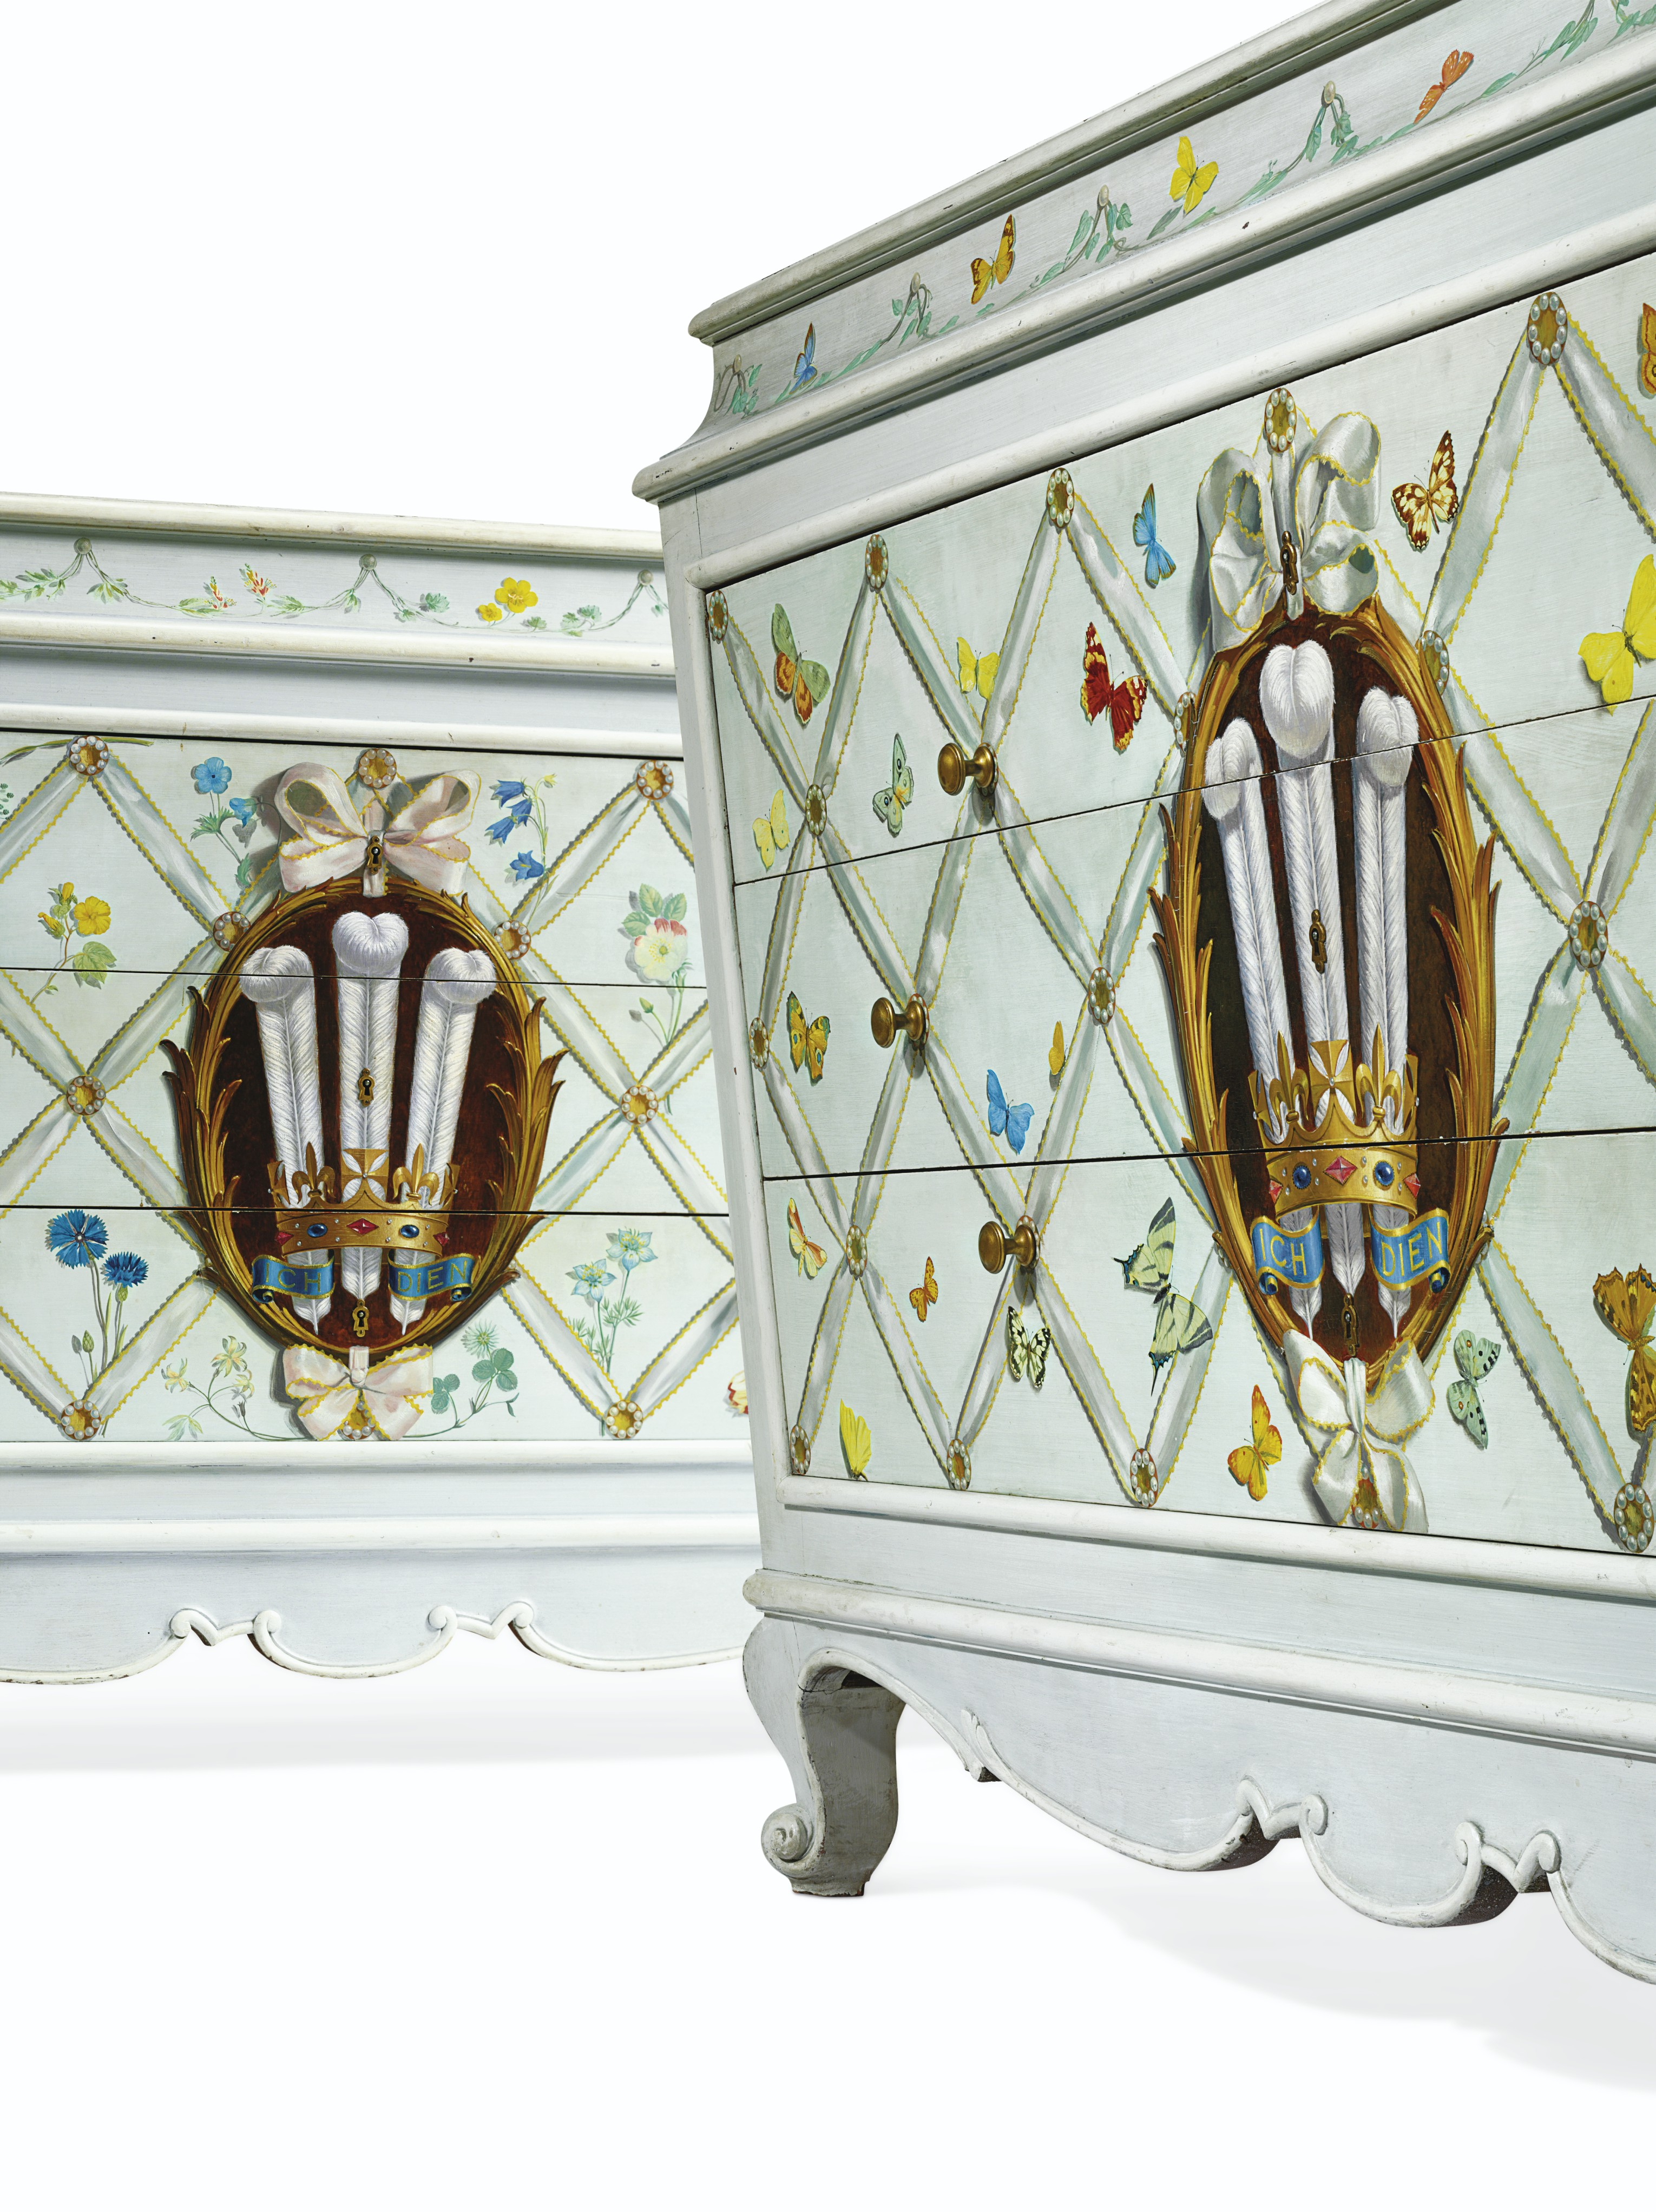 A PAIR OF FRENCH POLYCHROME-PAINTED COMMODES